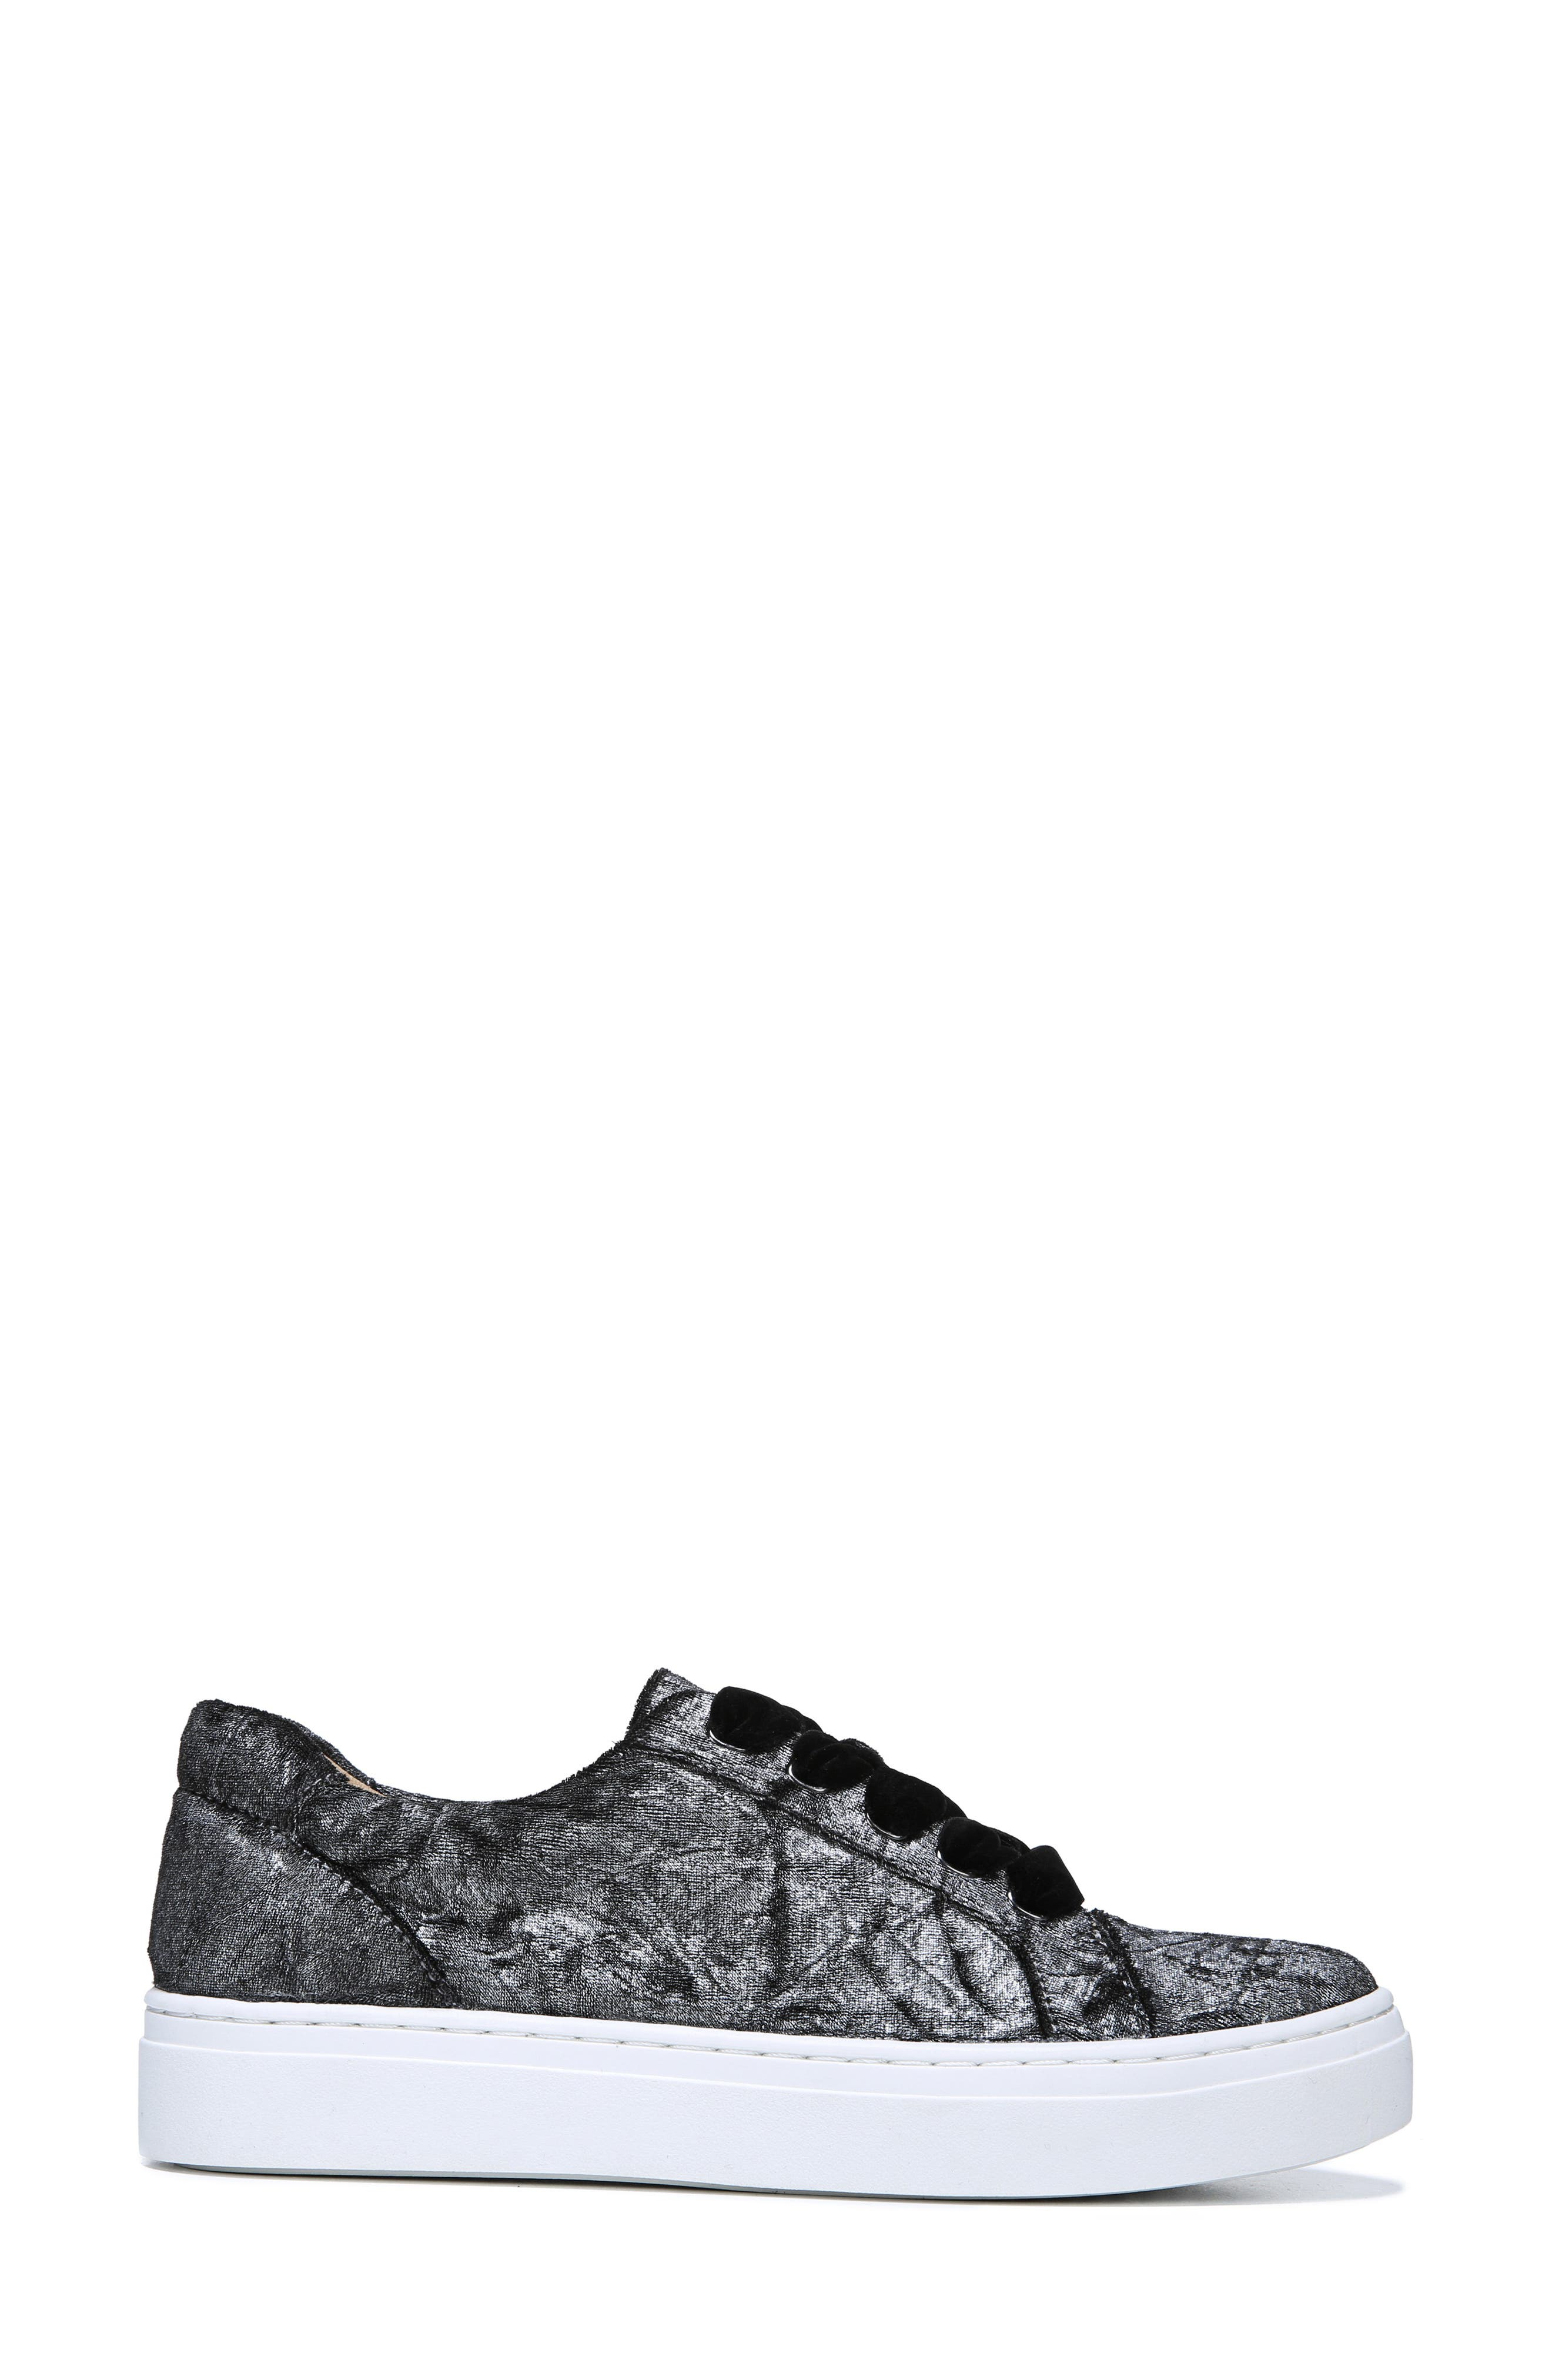 NATURALIZER, Cairo Sneaker, Alternate thumbnail 3, color, PEWTER VELVET